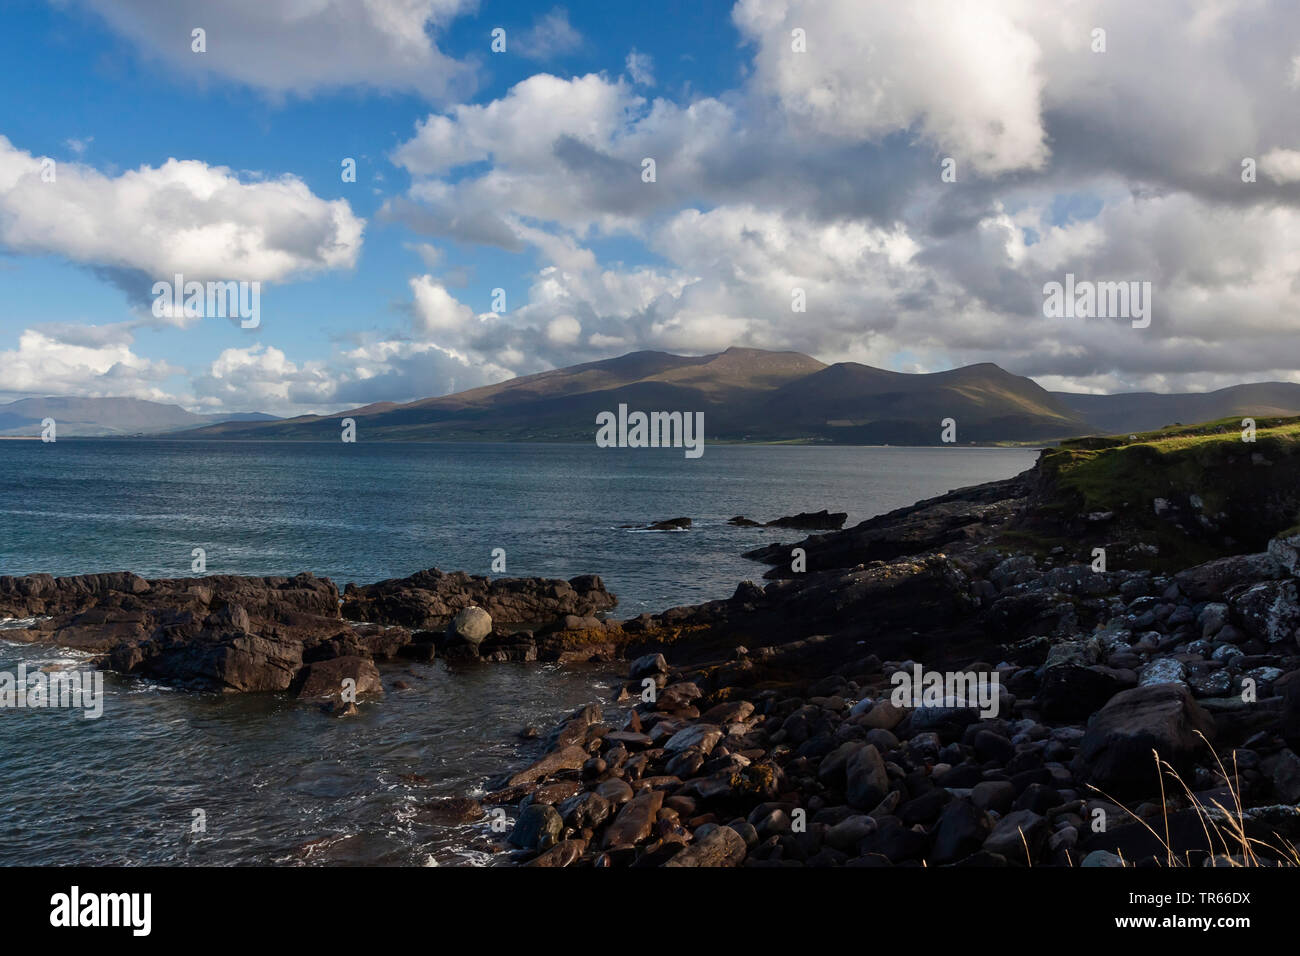 Felskueste der Dingle-Halbinsel, Irland, County Kerry, Dingle-Halbinsel, Dingle |  , rocky coast of Dingle peninsula, Ring of Kerry, Ireland, County K - Stock Image